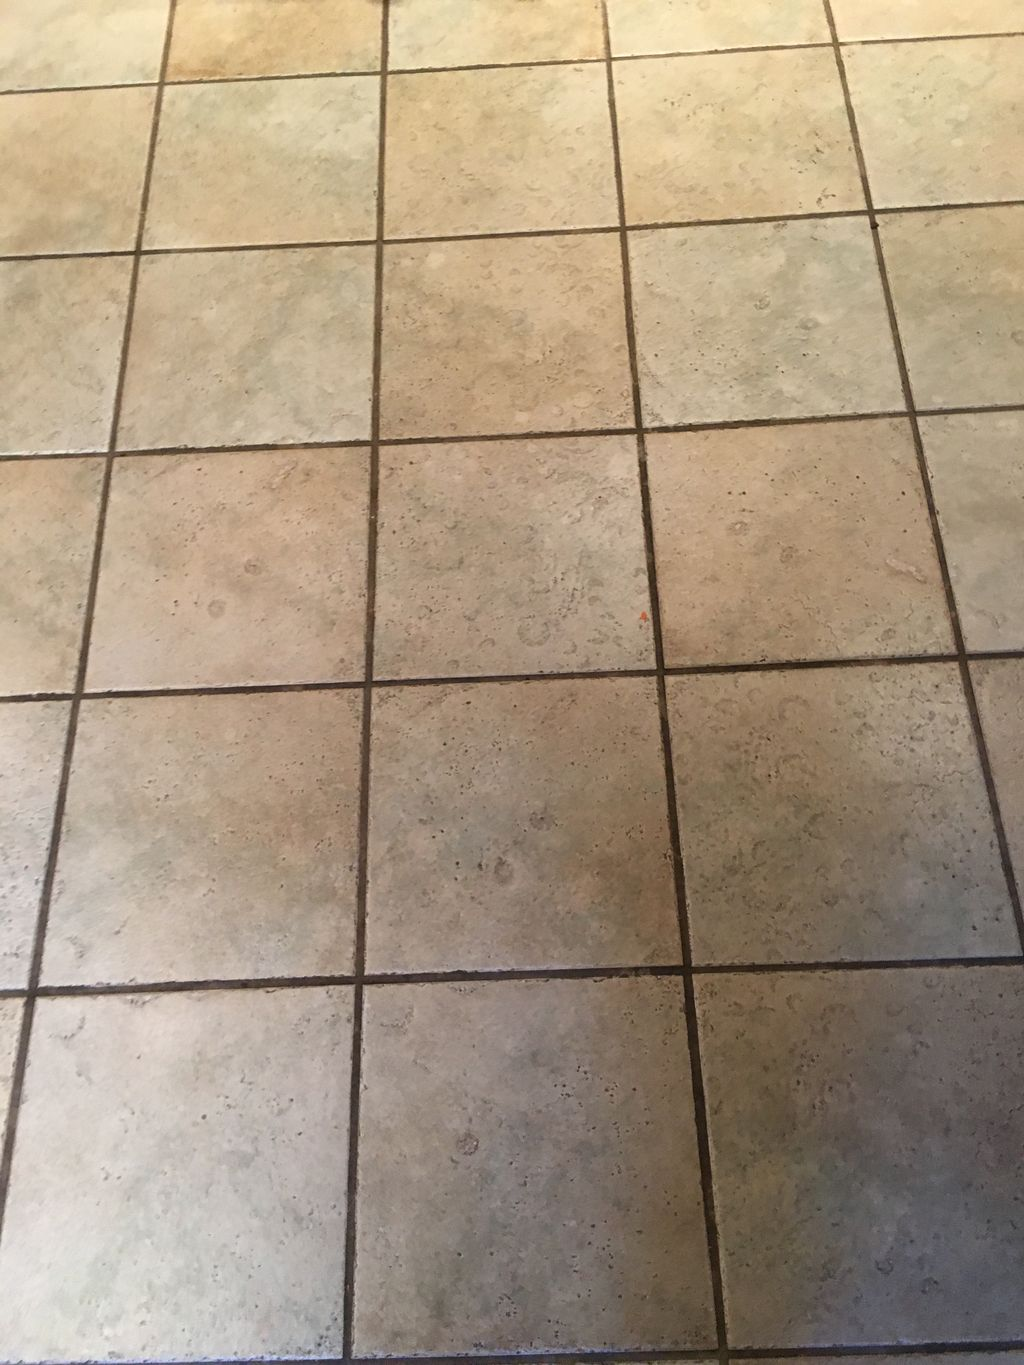 Tile and grout repair, grout restoration, sealing